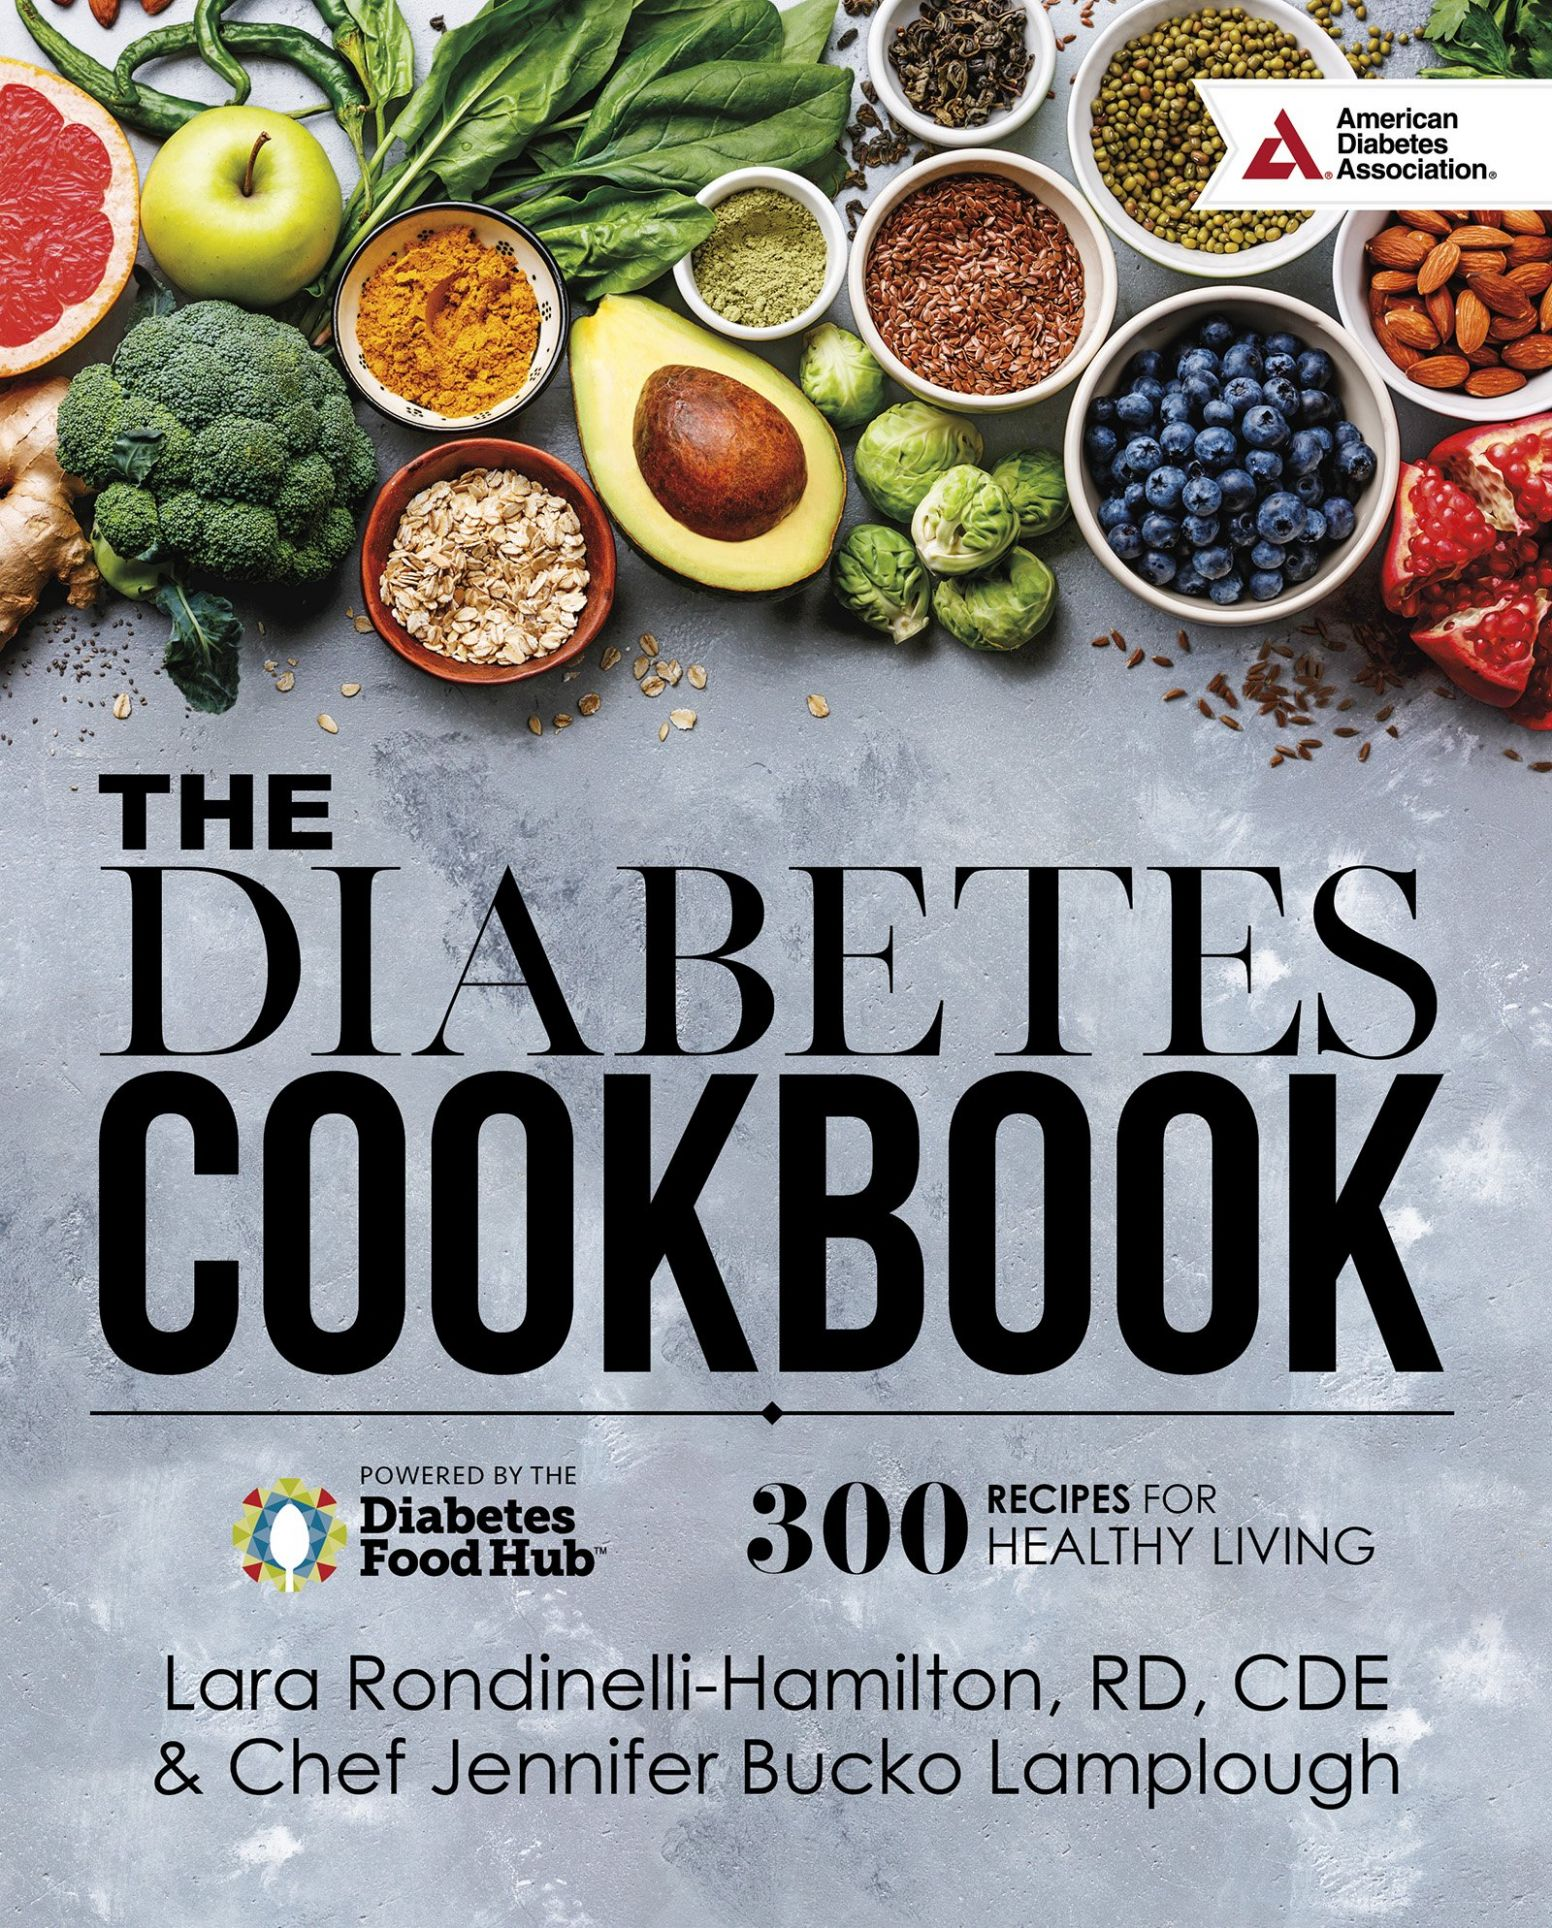 The Diabetes Cookbook: 9 Healthy Recipes for Living Powered by ..